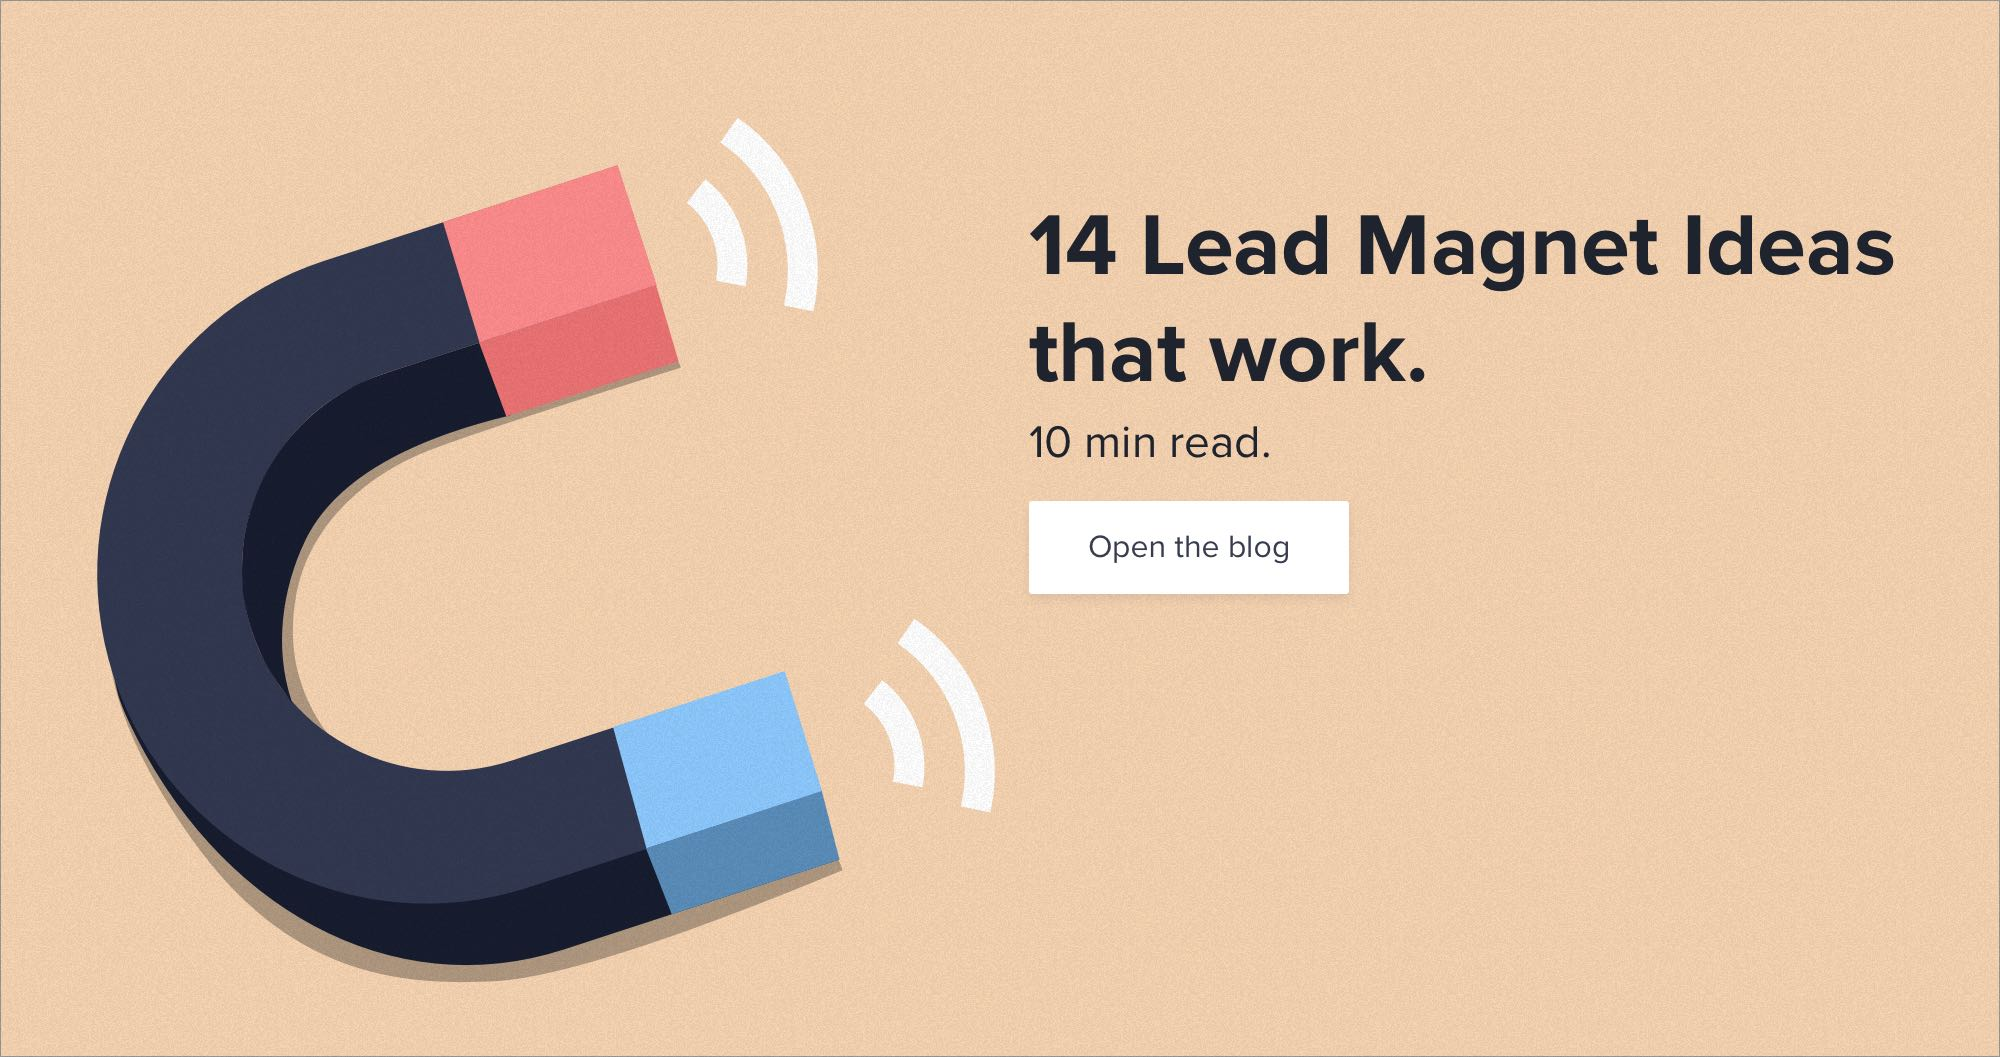 Generate and nurture more leads with the most effective lead magnets.